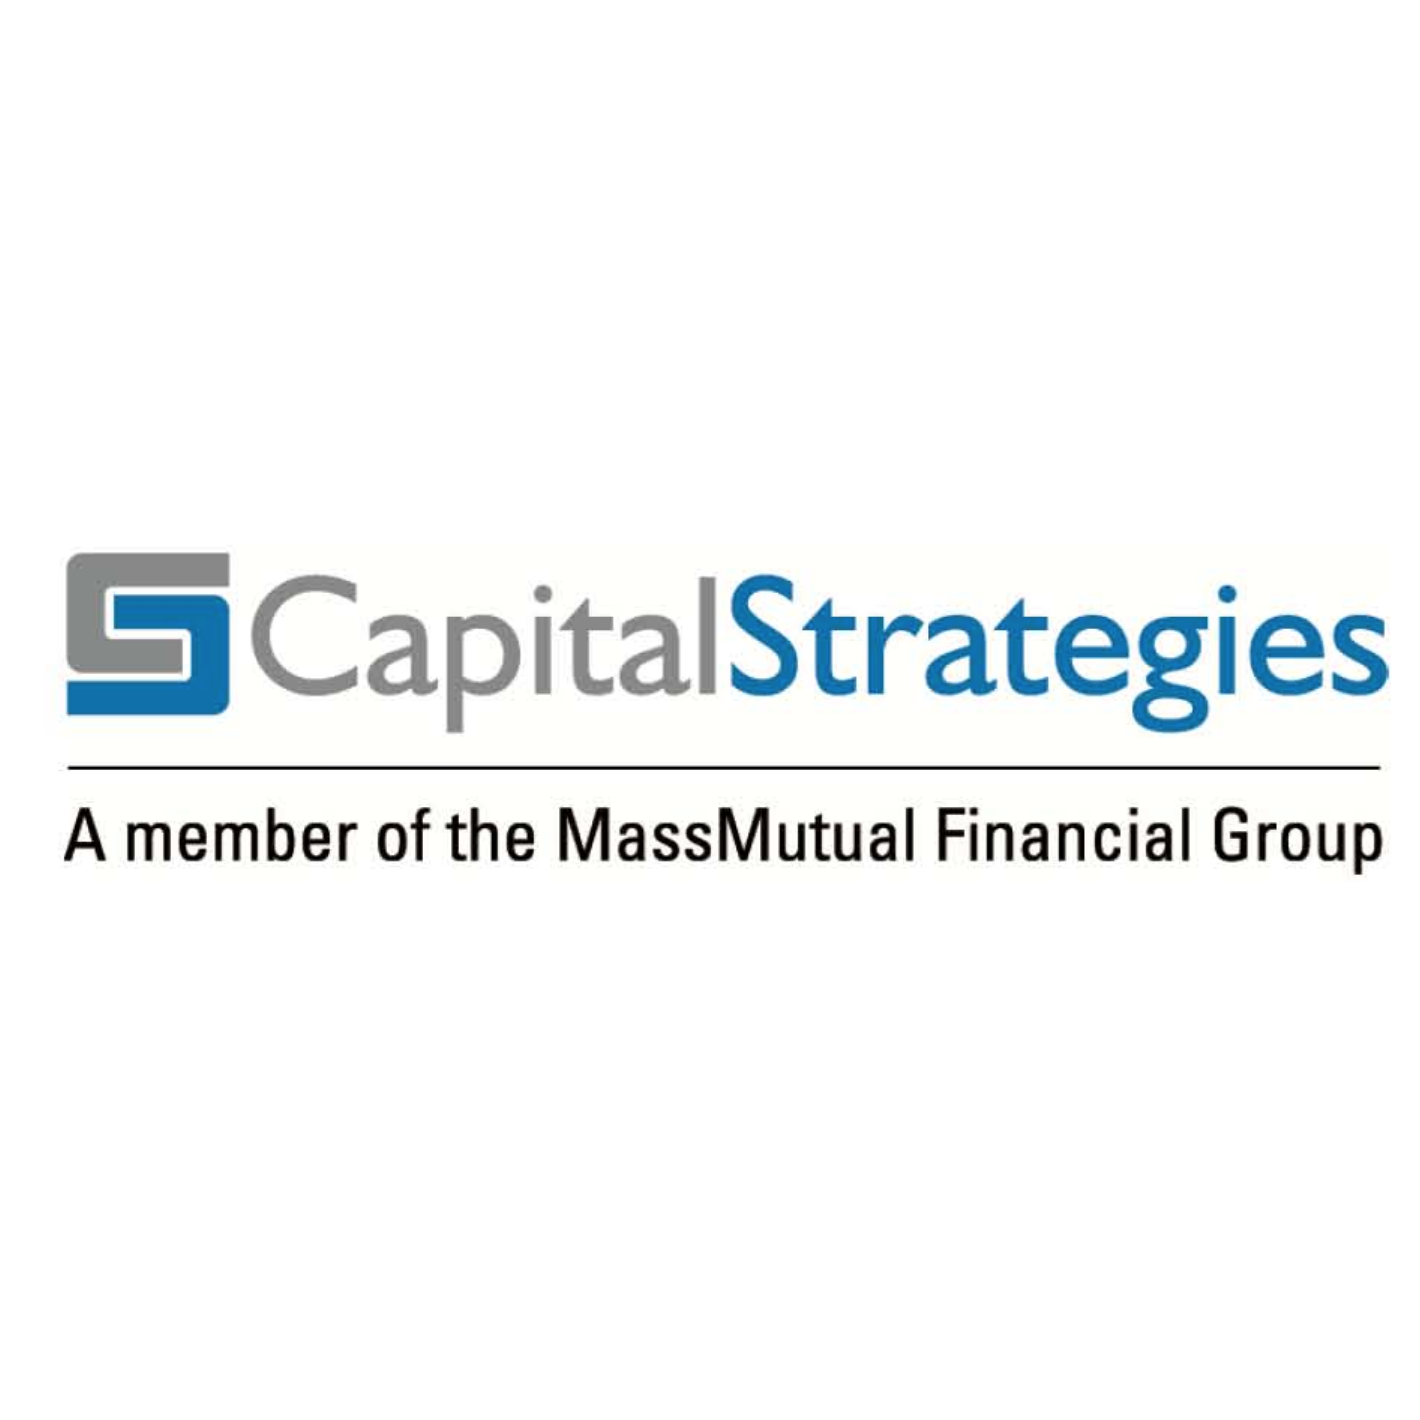 Capital Strategies